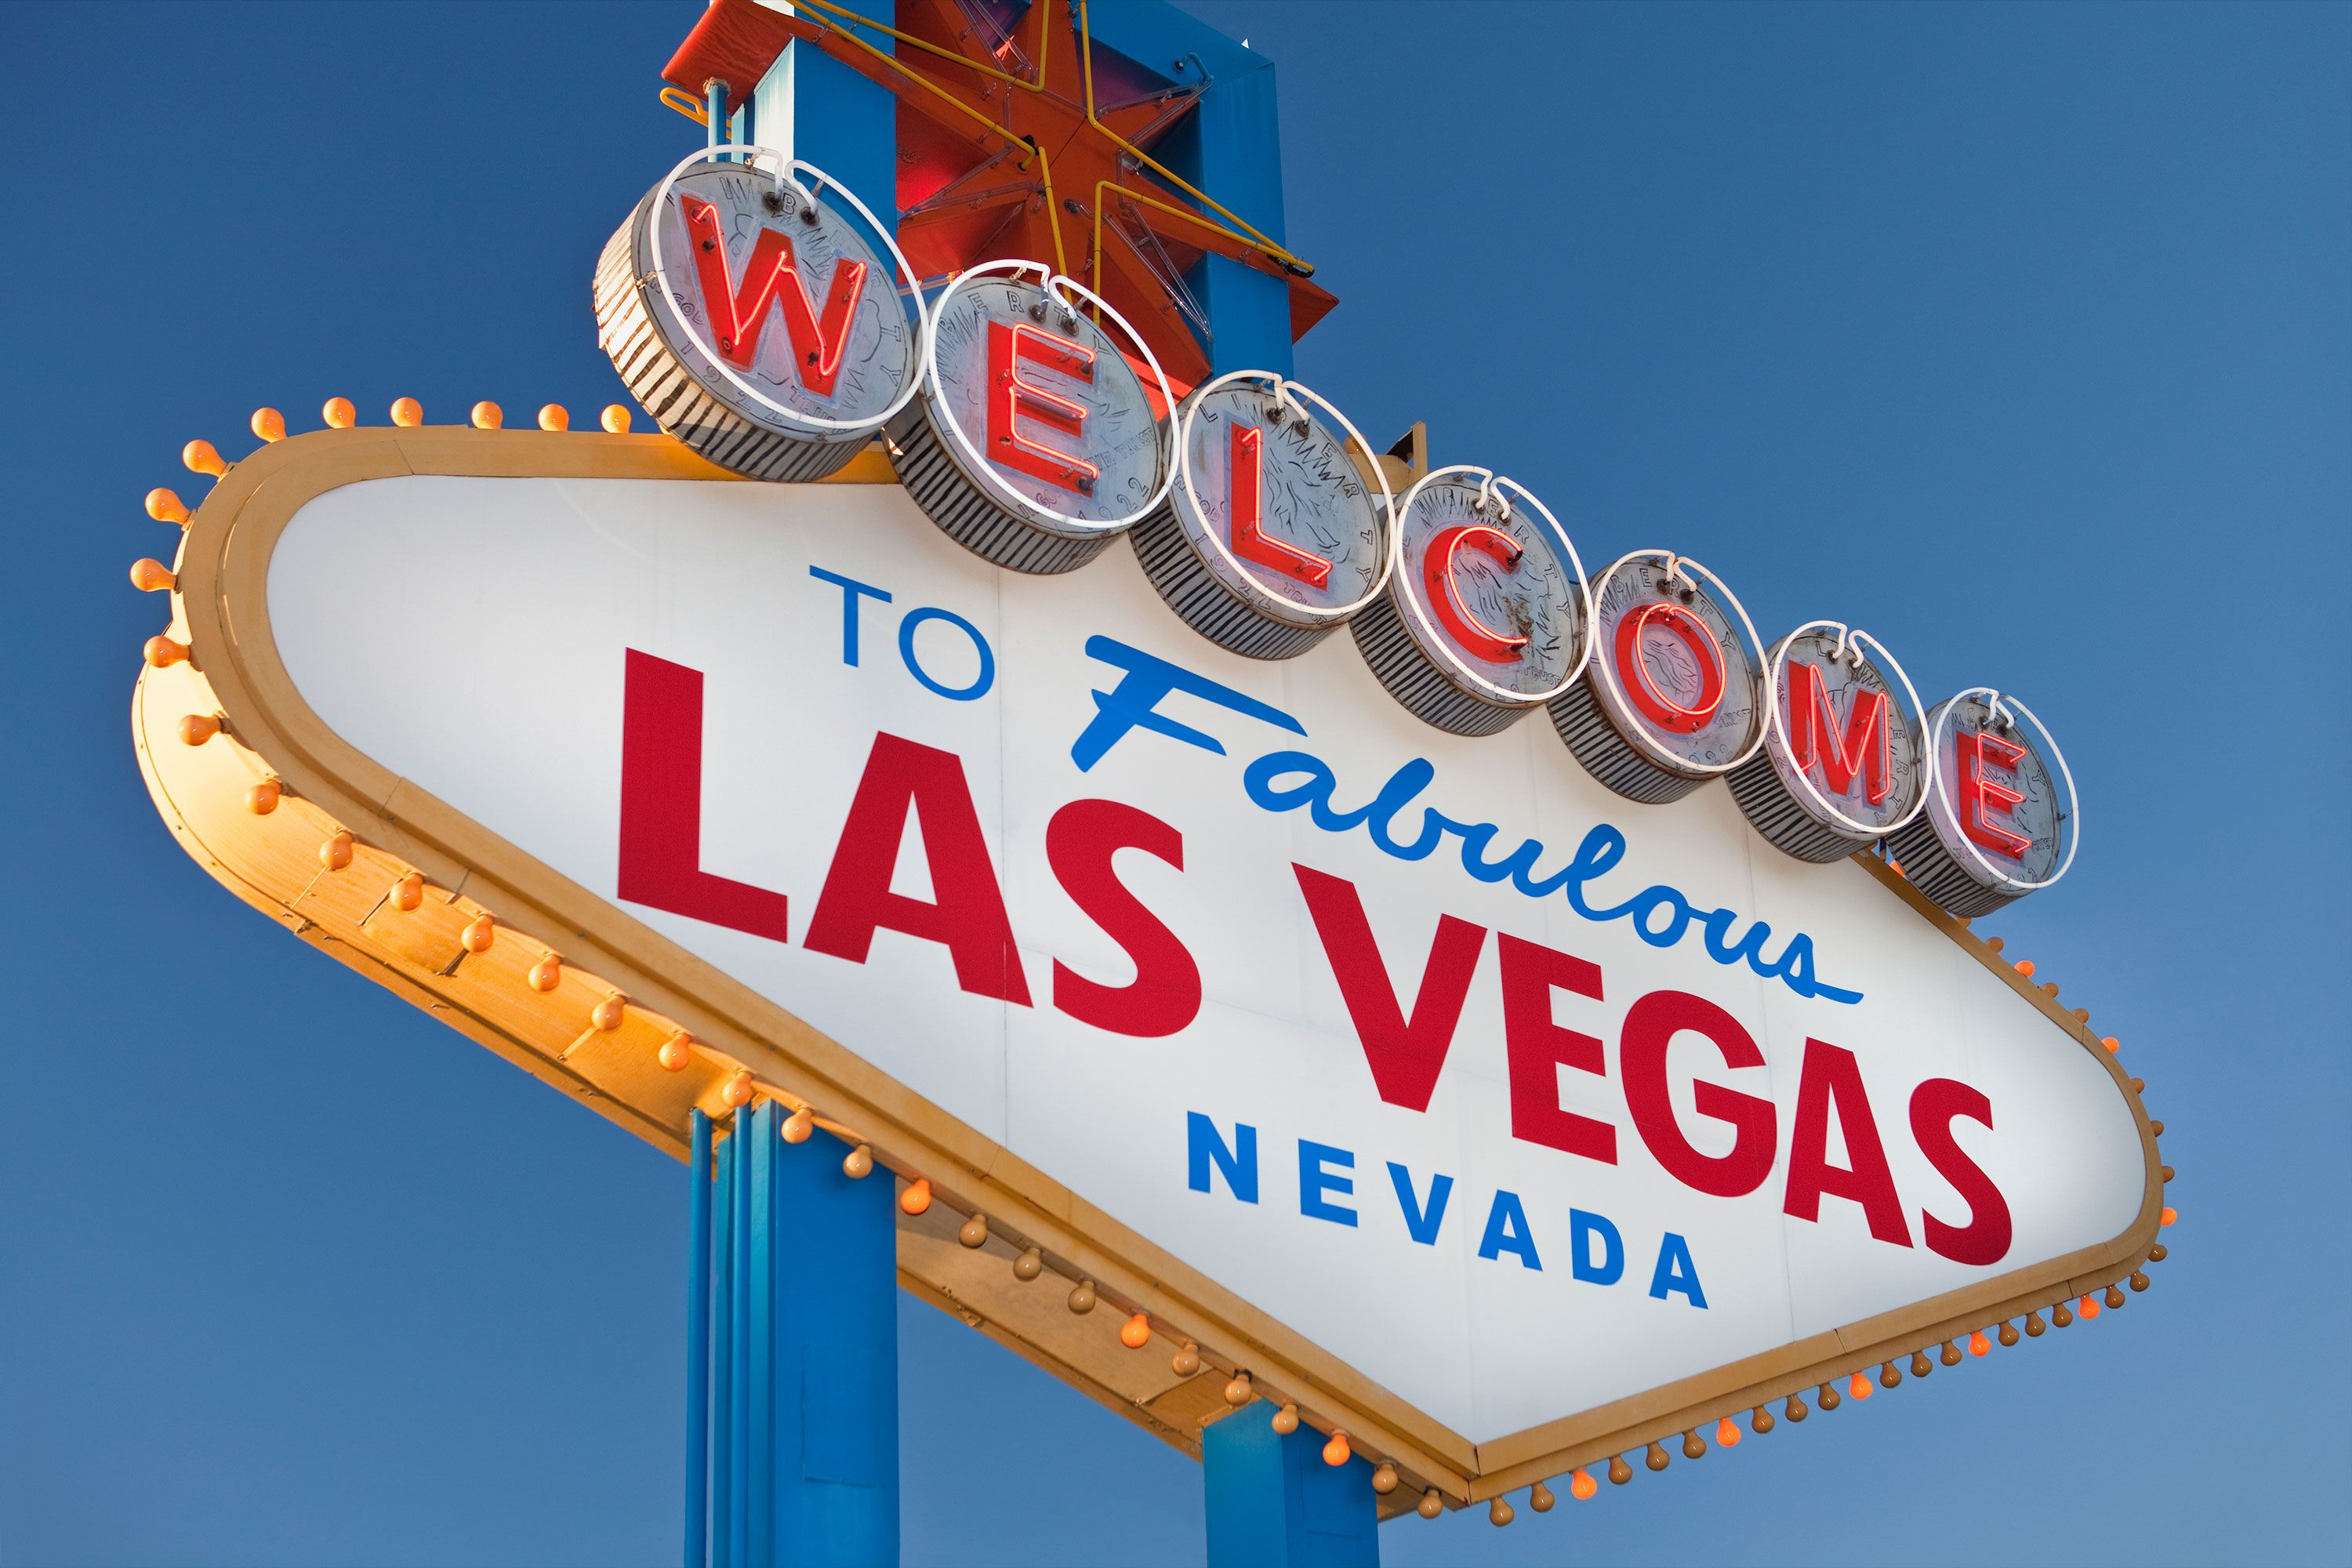 Las Vegas Strip expert guide: the best hotels, bars, restaurants and things to do